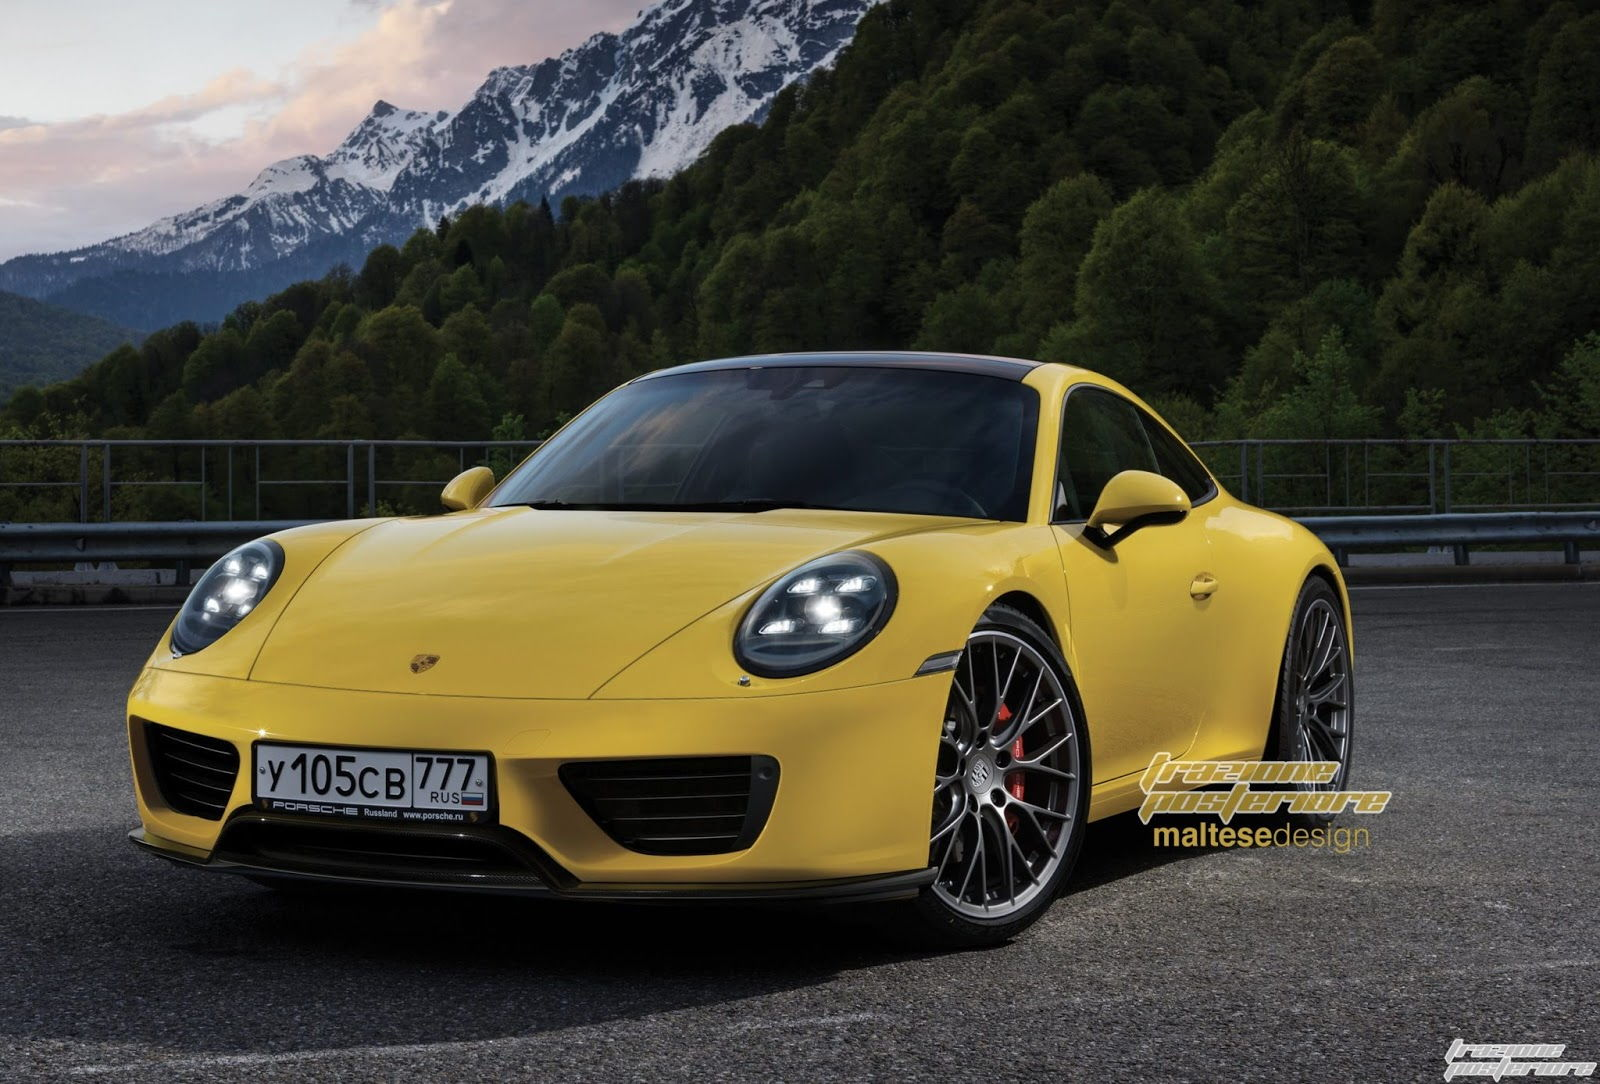 2019 porsche 911 rendering rennlist porsche discussion forums. Black Bedroom Furniture Sets. Home Design Ideas